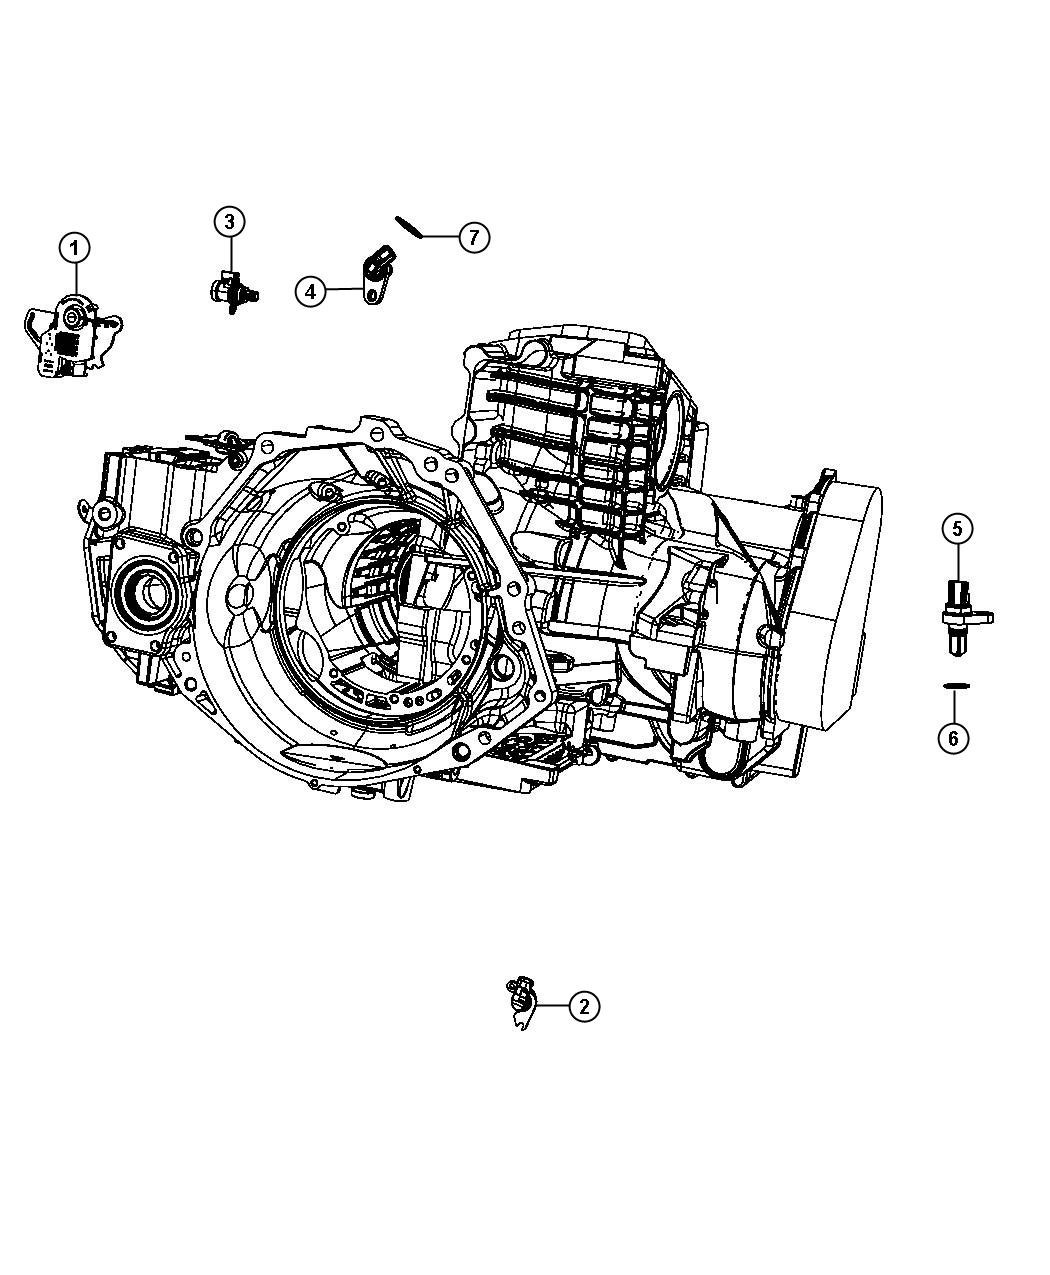 2002 dodge caravan wiring diagram color coding by jorge menchu grand engine additionally 1999